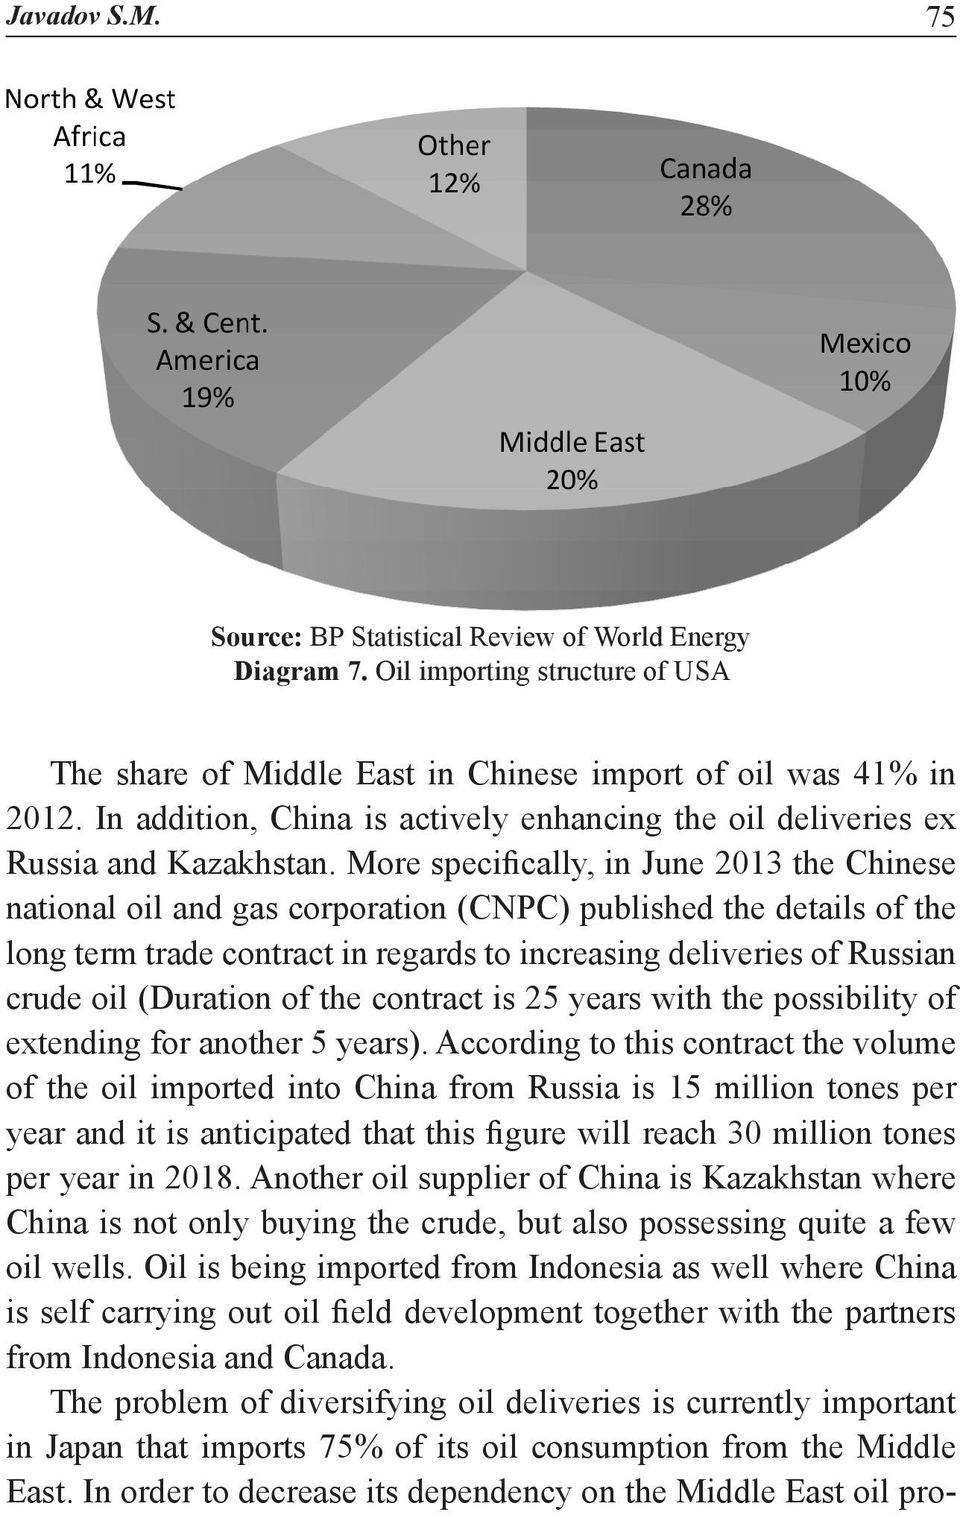 More specifically, in June 2013 the Chinese national oil and gas corporation (CNPC) published the details of the long term trade contract in regards to increasing deliveries of Russian crude oil